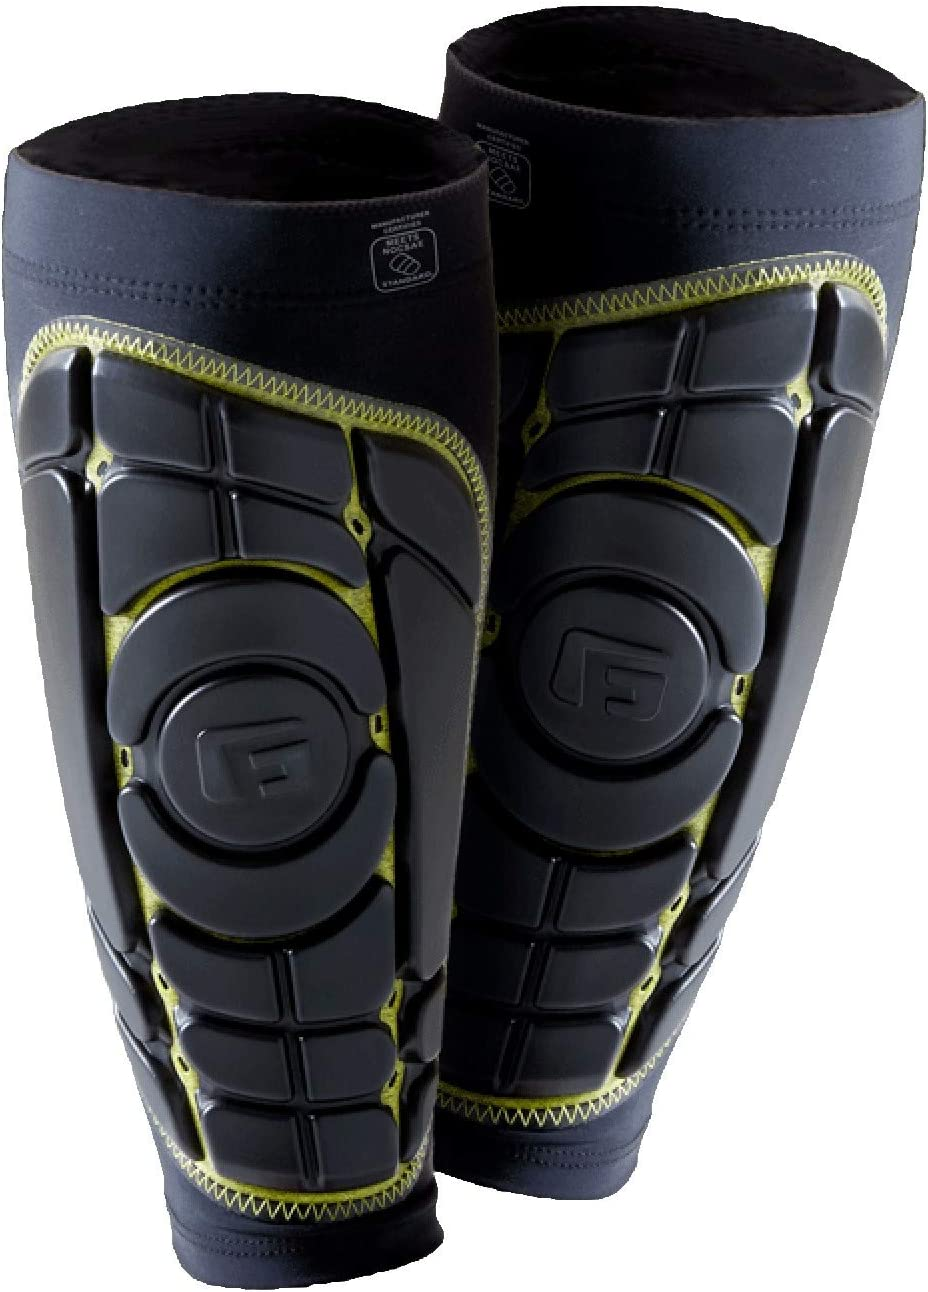 G-Form Pro-S Elite Shin Guards : Sports & Outdoors